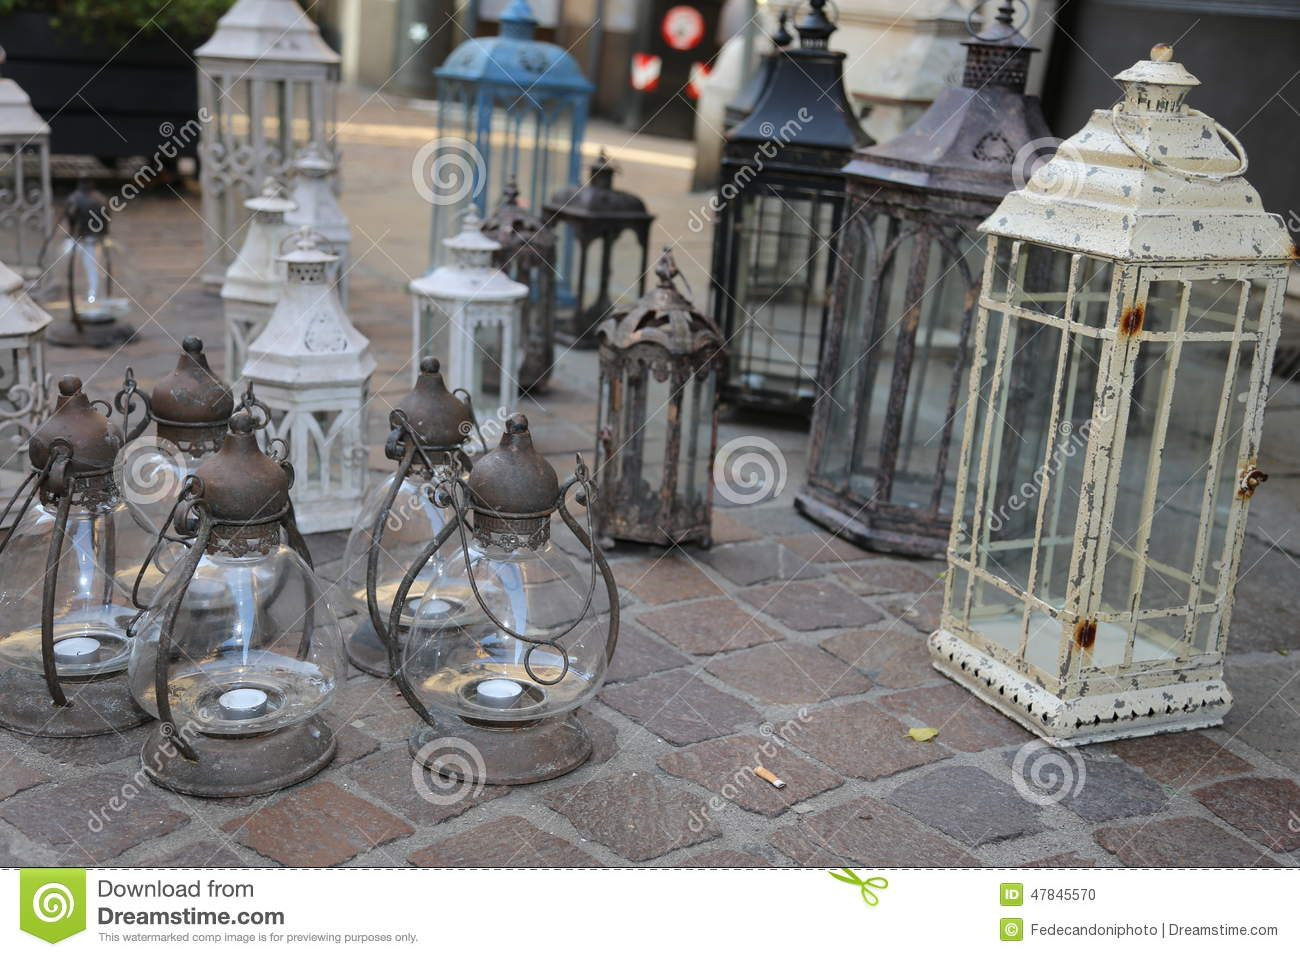 Lanterns And Lights For Sale At Flea Market Stock Photo Image Of Lantern Light 47845570